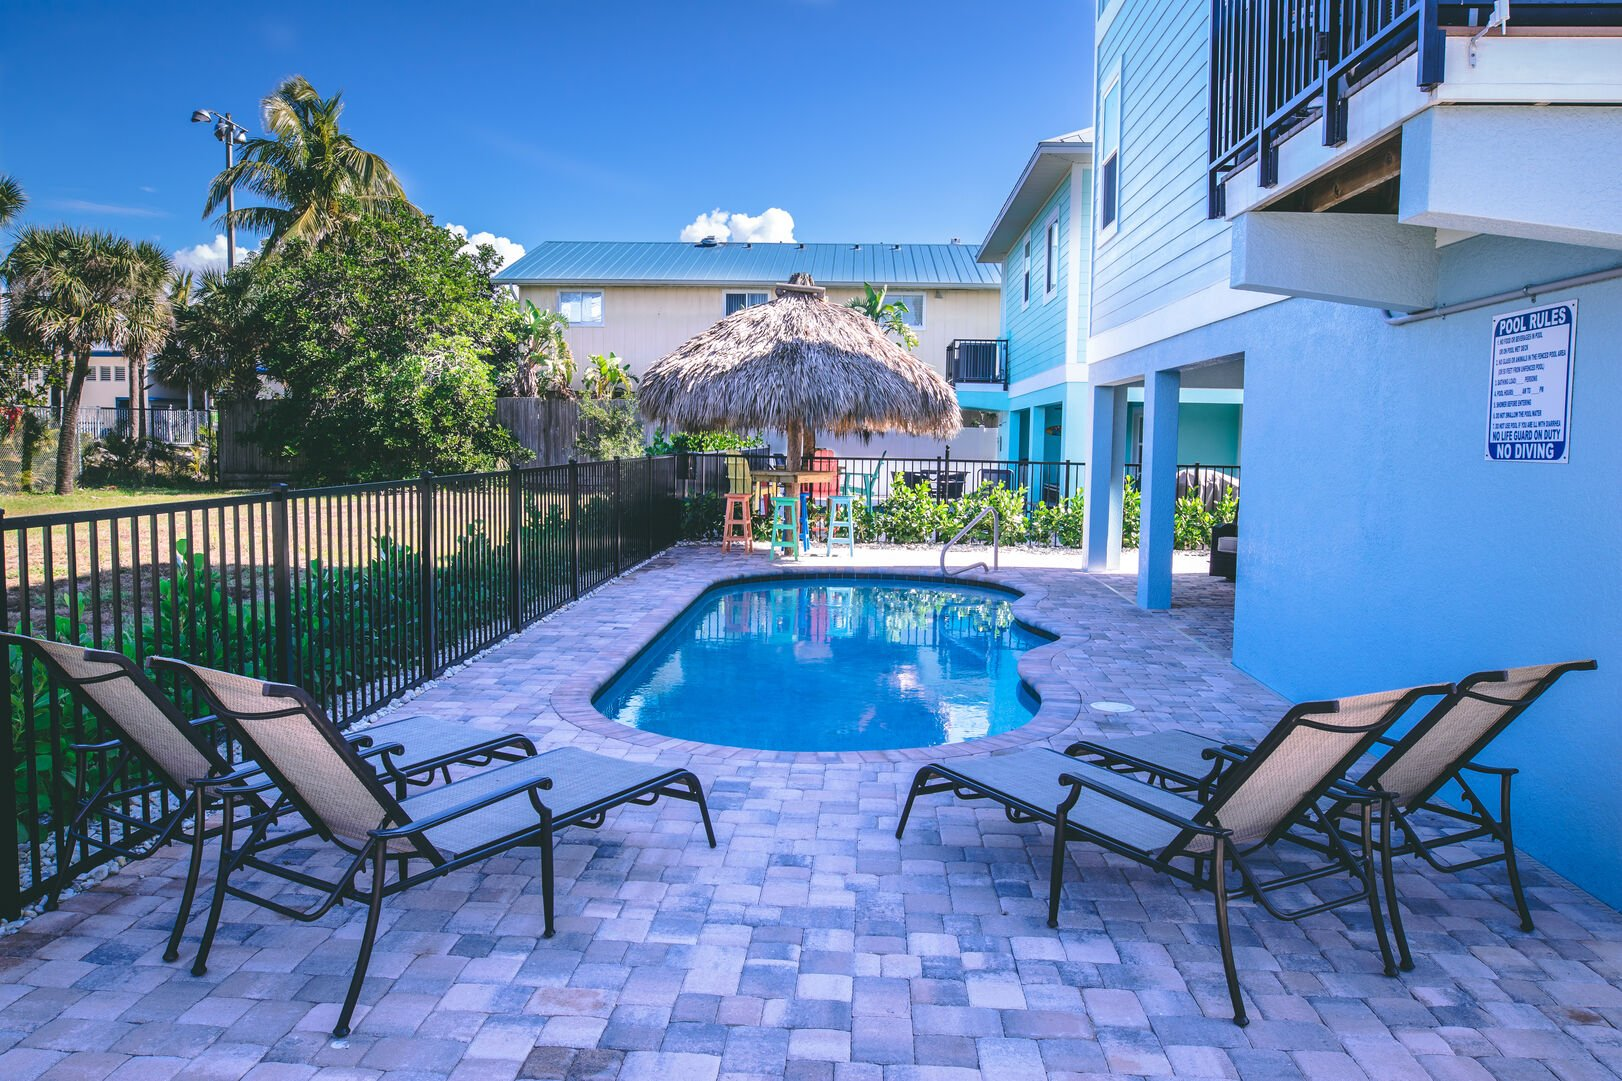 Pool outside of this vacation rental Fort Myers Beach Florida